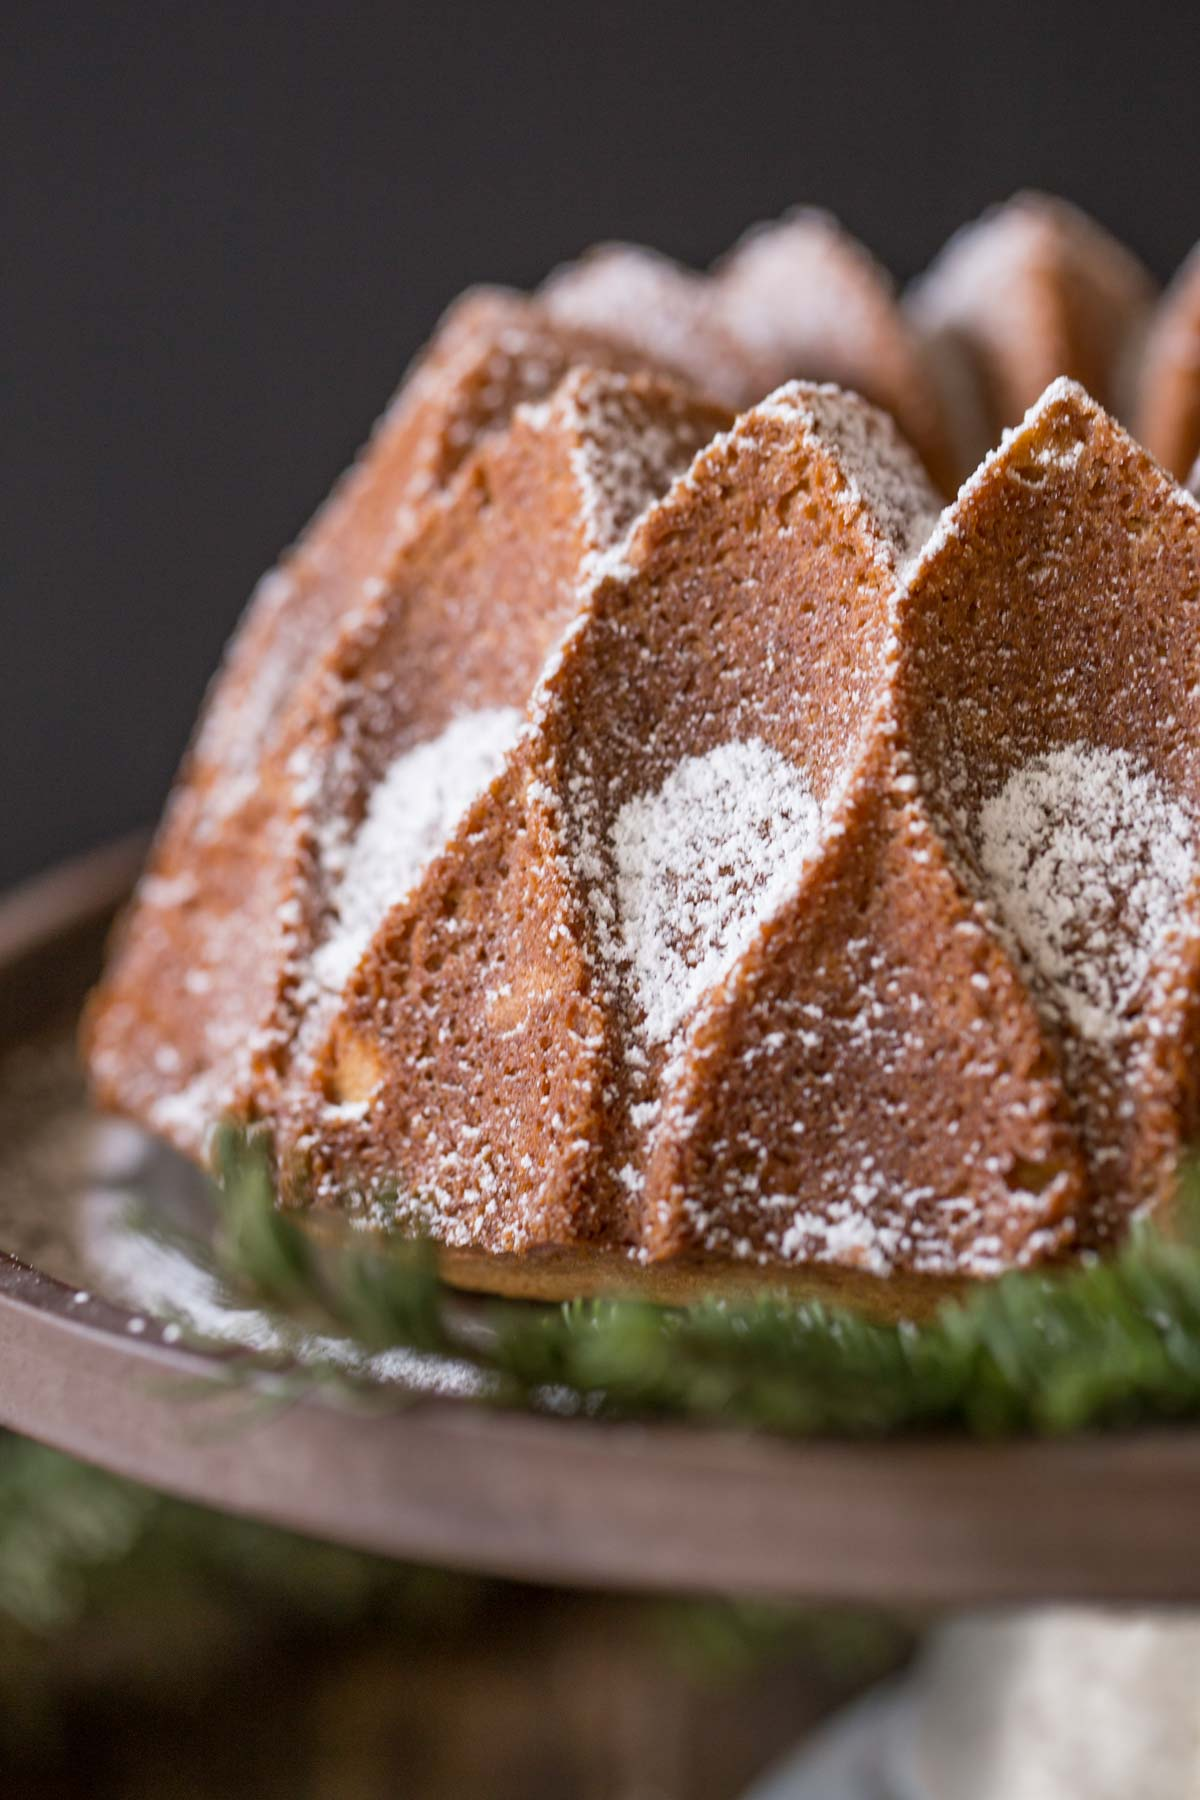 Gingerbread Bundt Cake on a cake stand, dusted with powdered sugar.